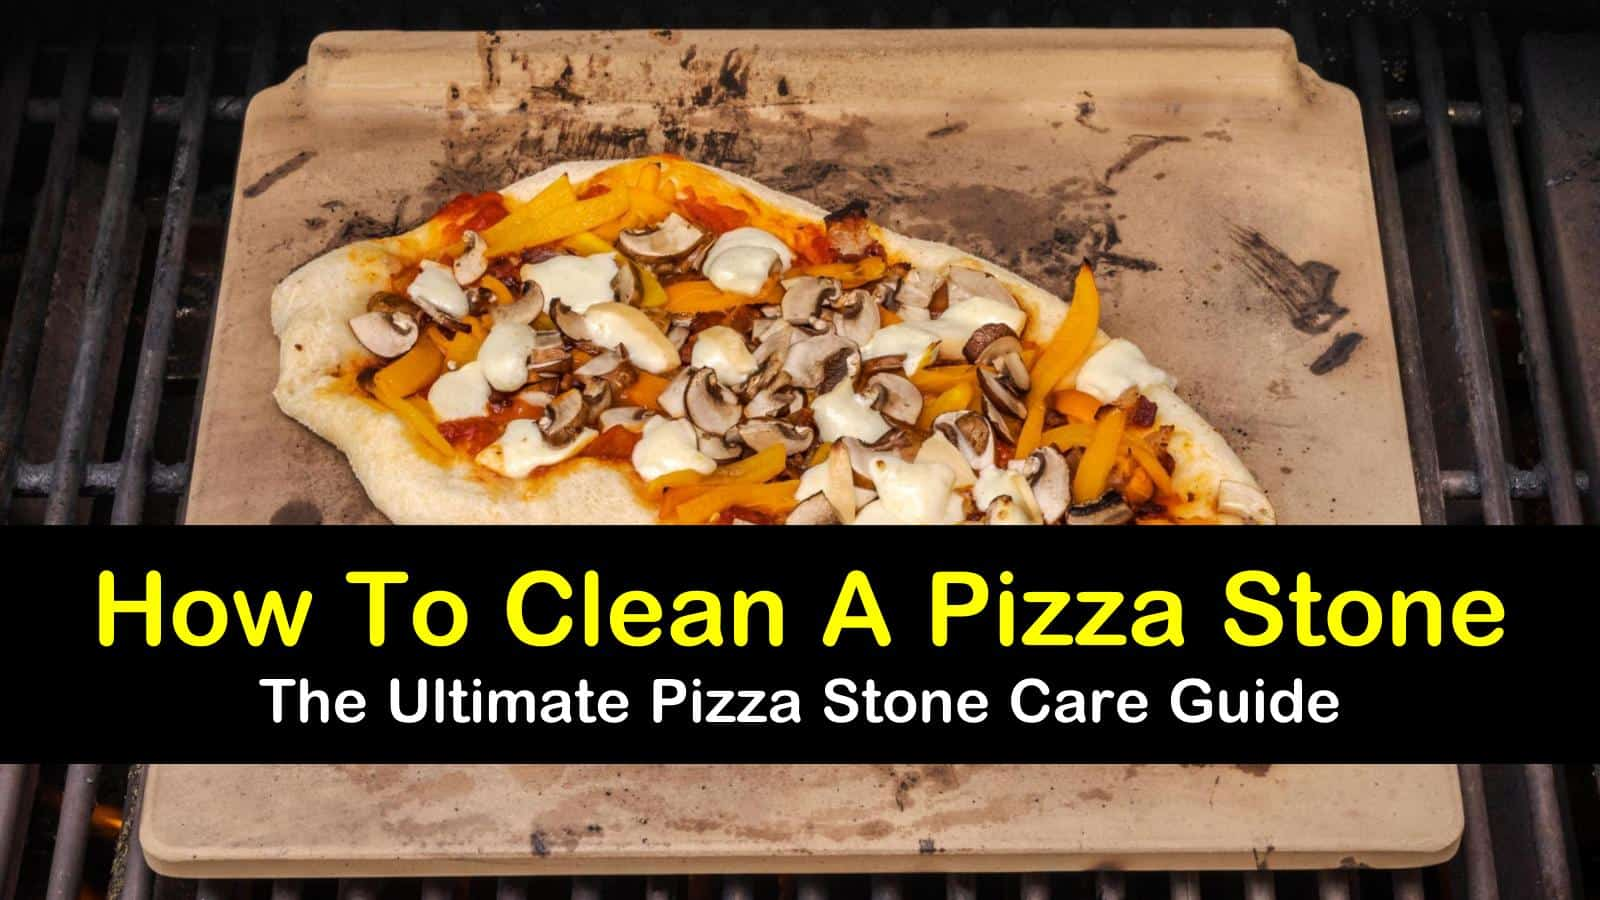 how to clean a pizza stone titleimg1